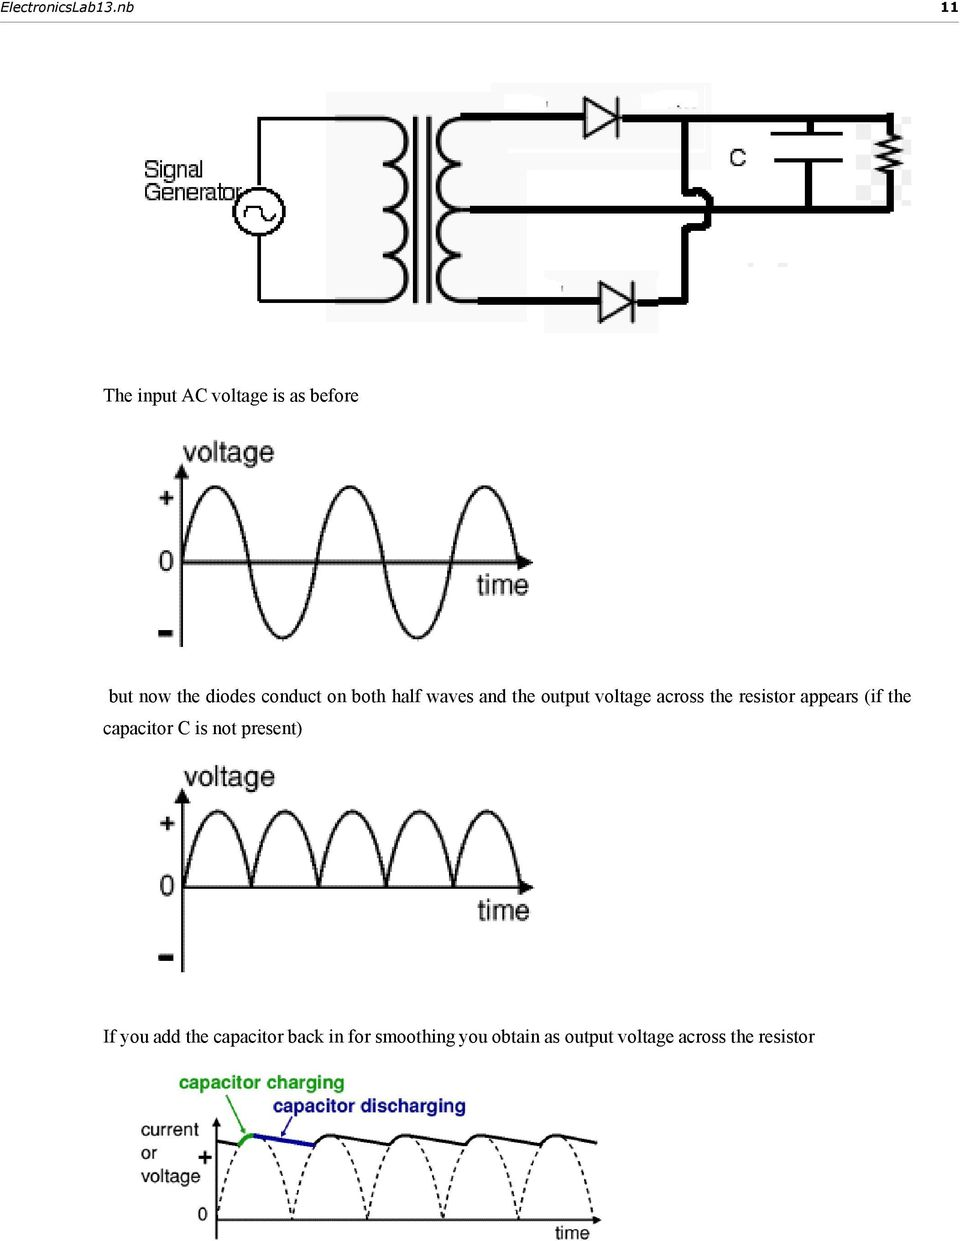 13 Diode Rectifiers Filters And Power Supplies Pdf Rectifiercircuits2 Appears If The Capacitor C Is Not Present You Add